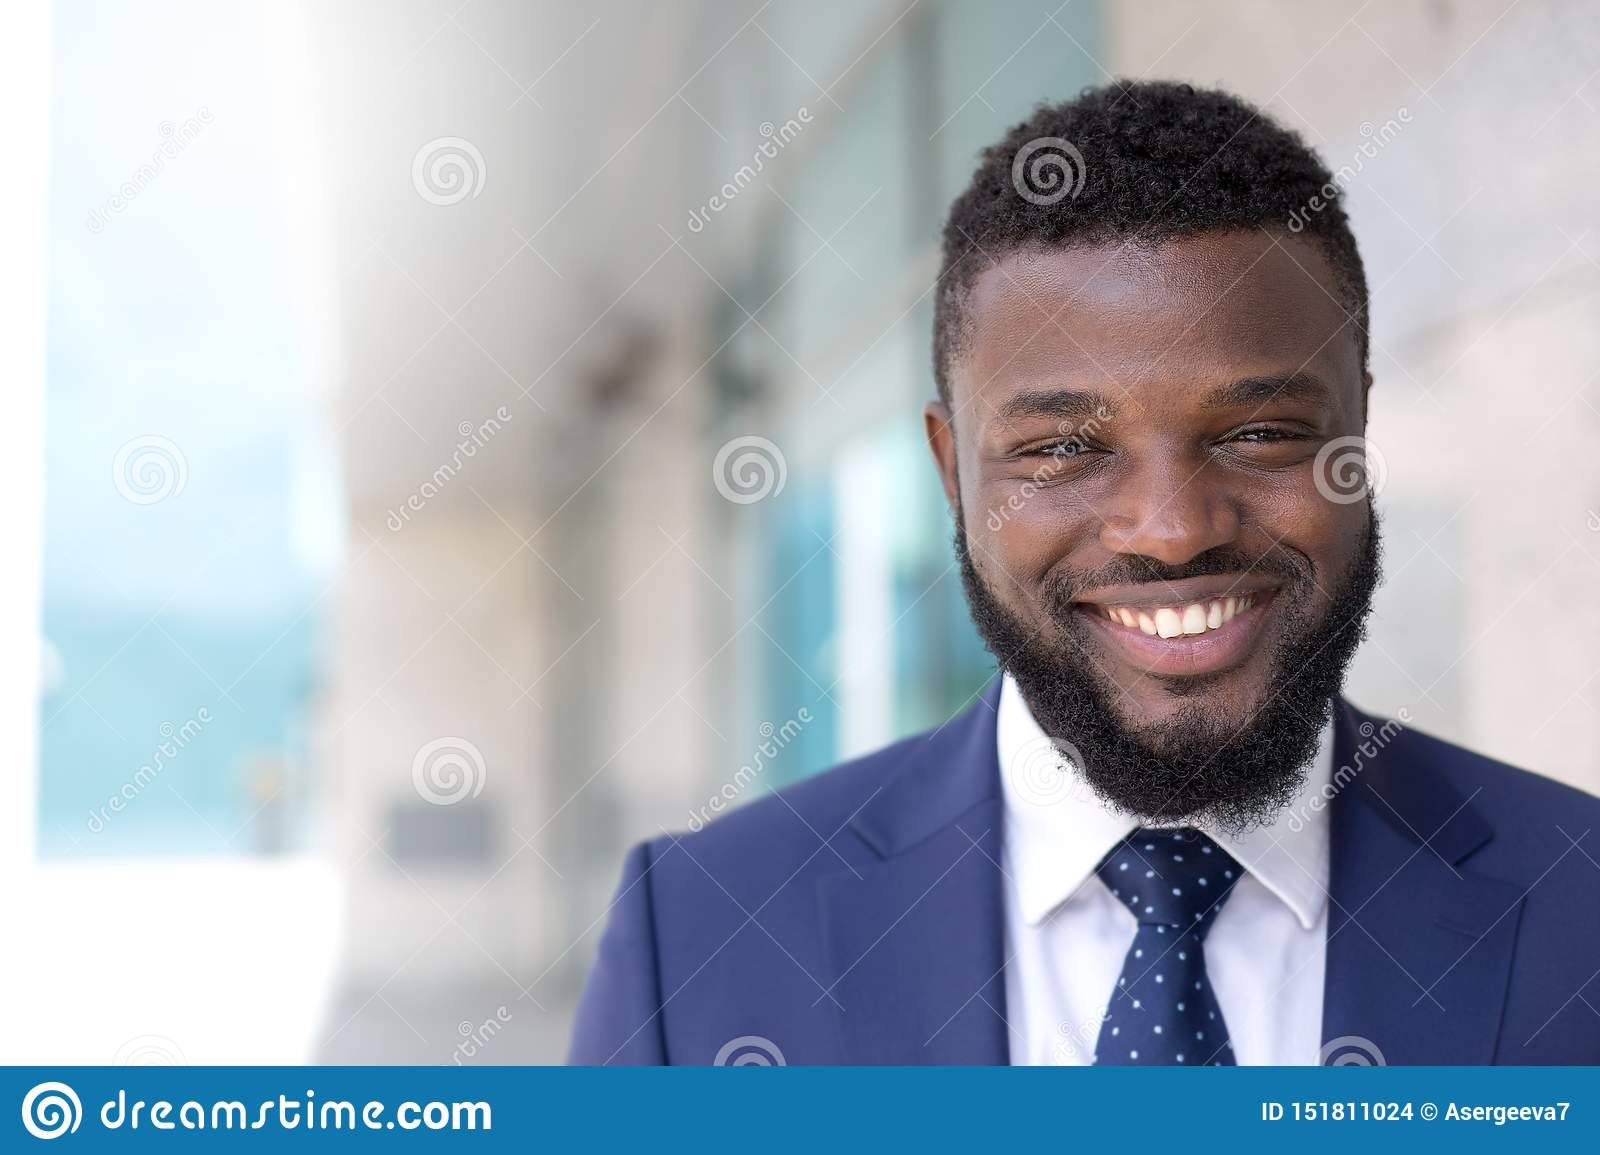 Portrait of black smiling businessman looking at camera in an urban setting. Copy space